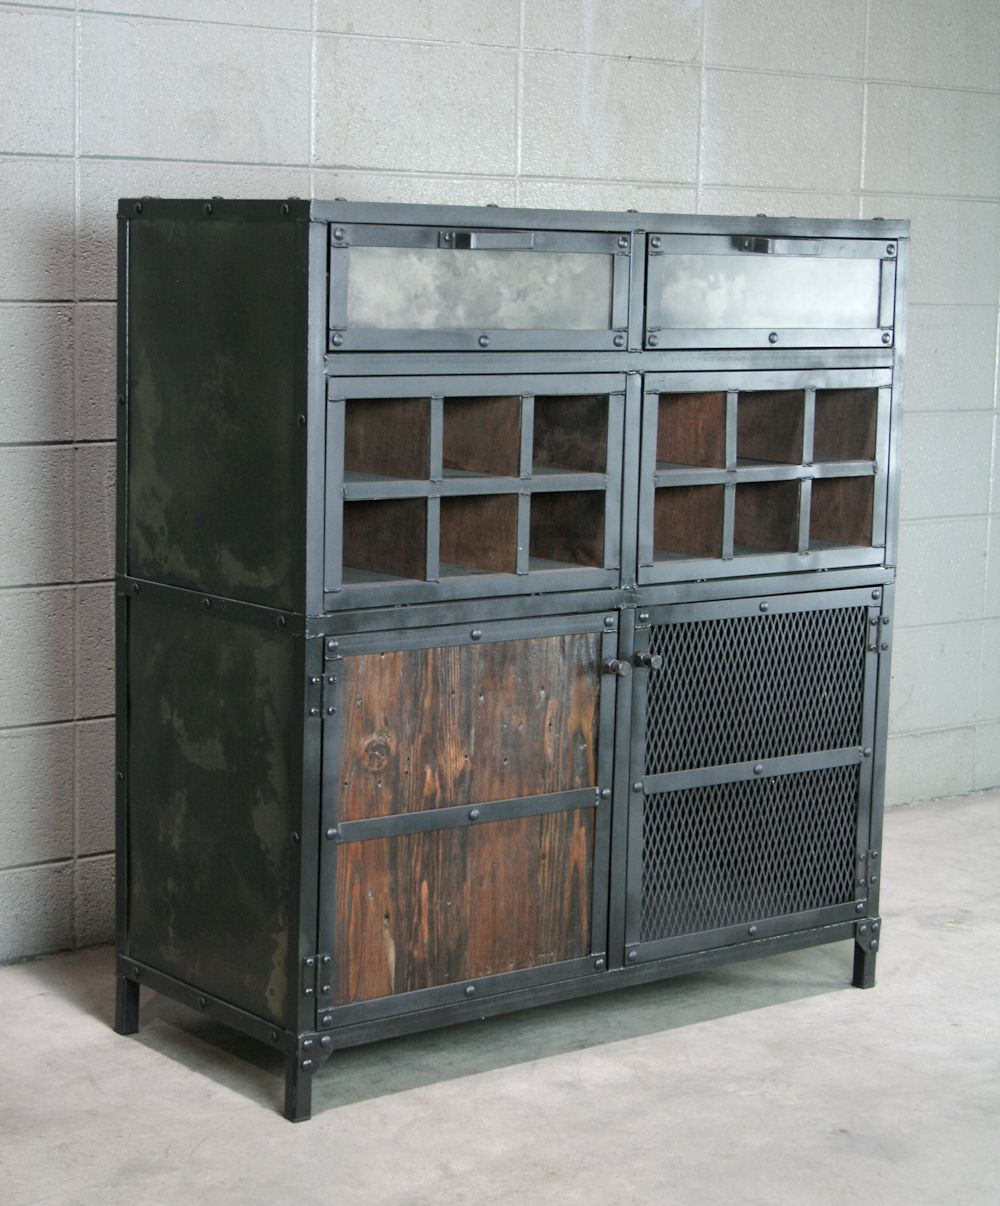 22 Industrial Kitchen Island Designs For Retro Look Of The: Buy A Hand Crafted Modern Industrial Liquor / Wine Cabinet